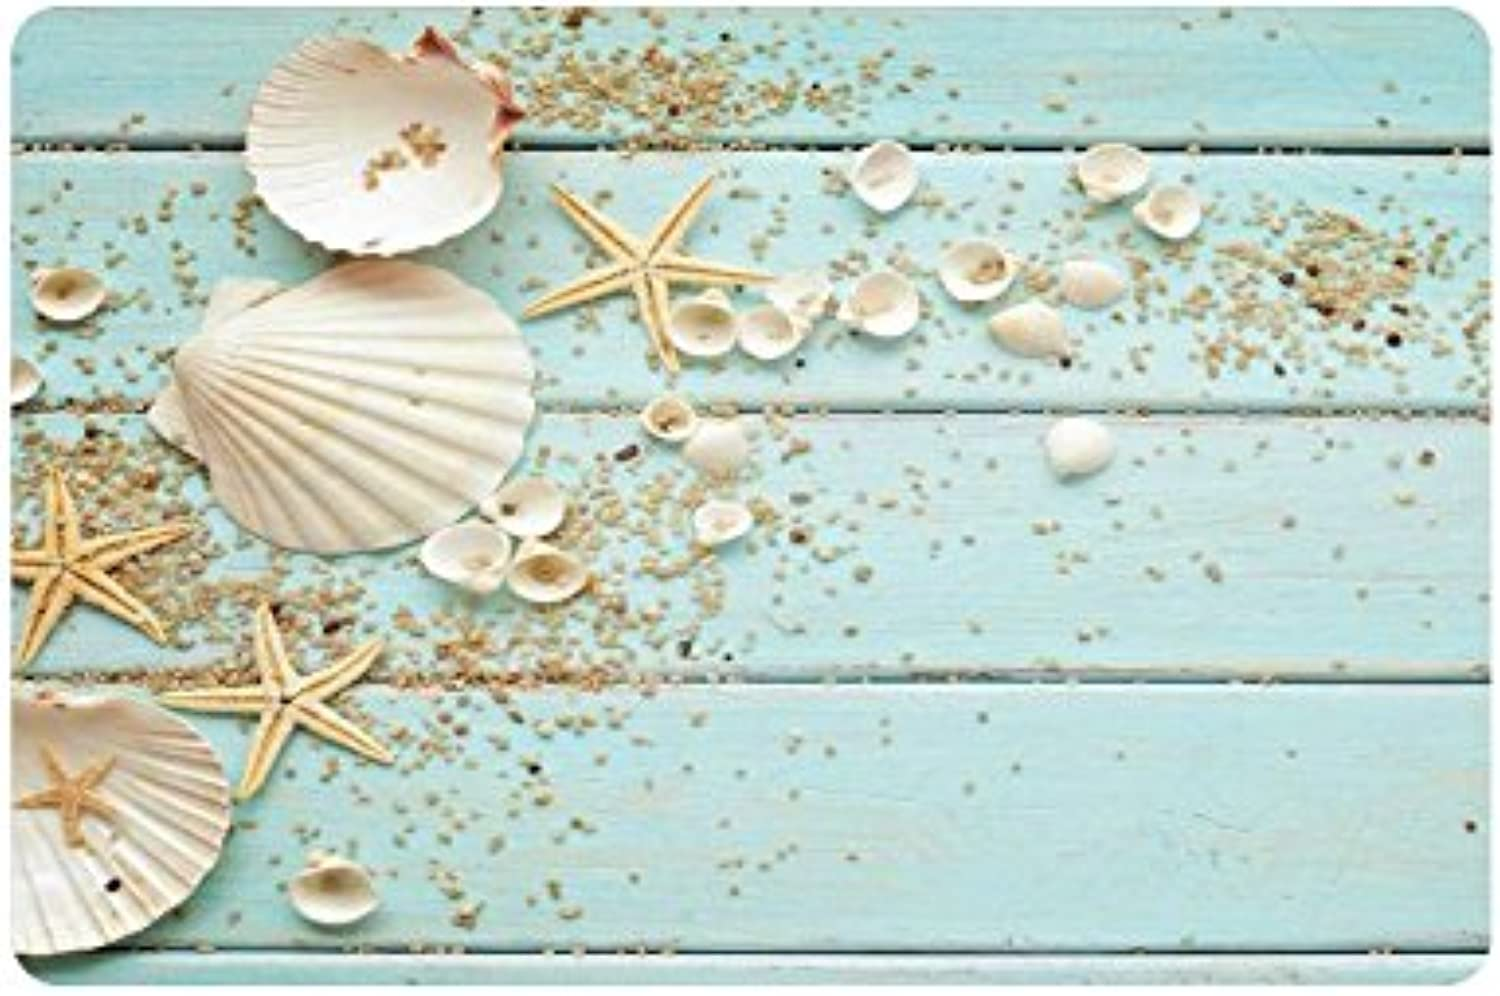 INTERESTPRINT bluee Anti-Slip Door Mat Home Decor, Seashells Starfish Indoor Outdoor Entrance Doormat Rubber Backing 23.6 X 15.7 Inches